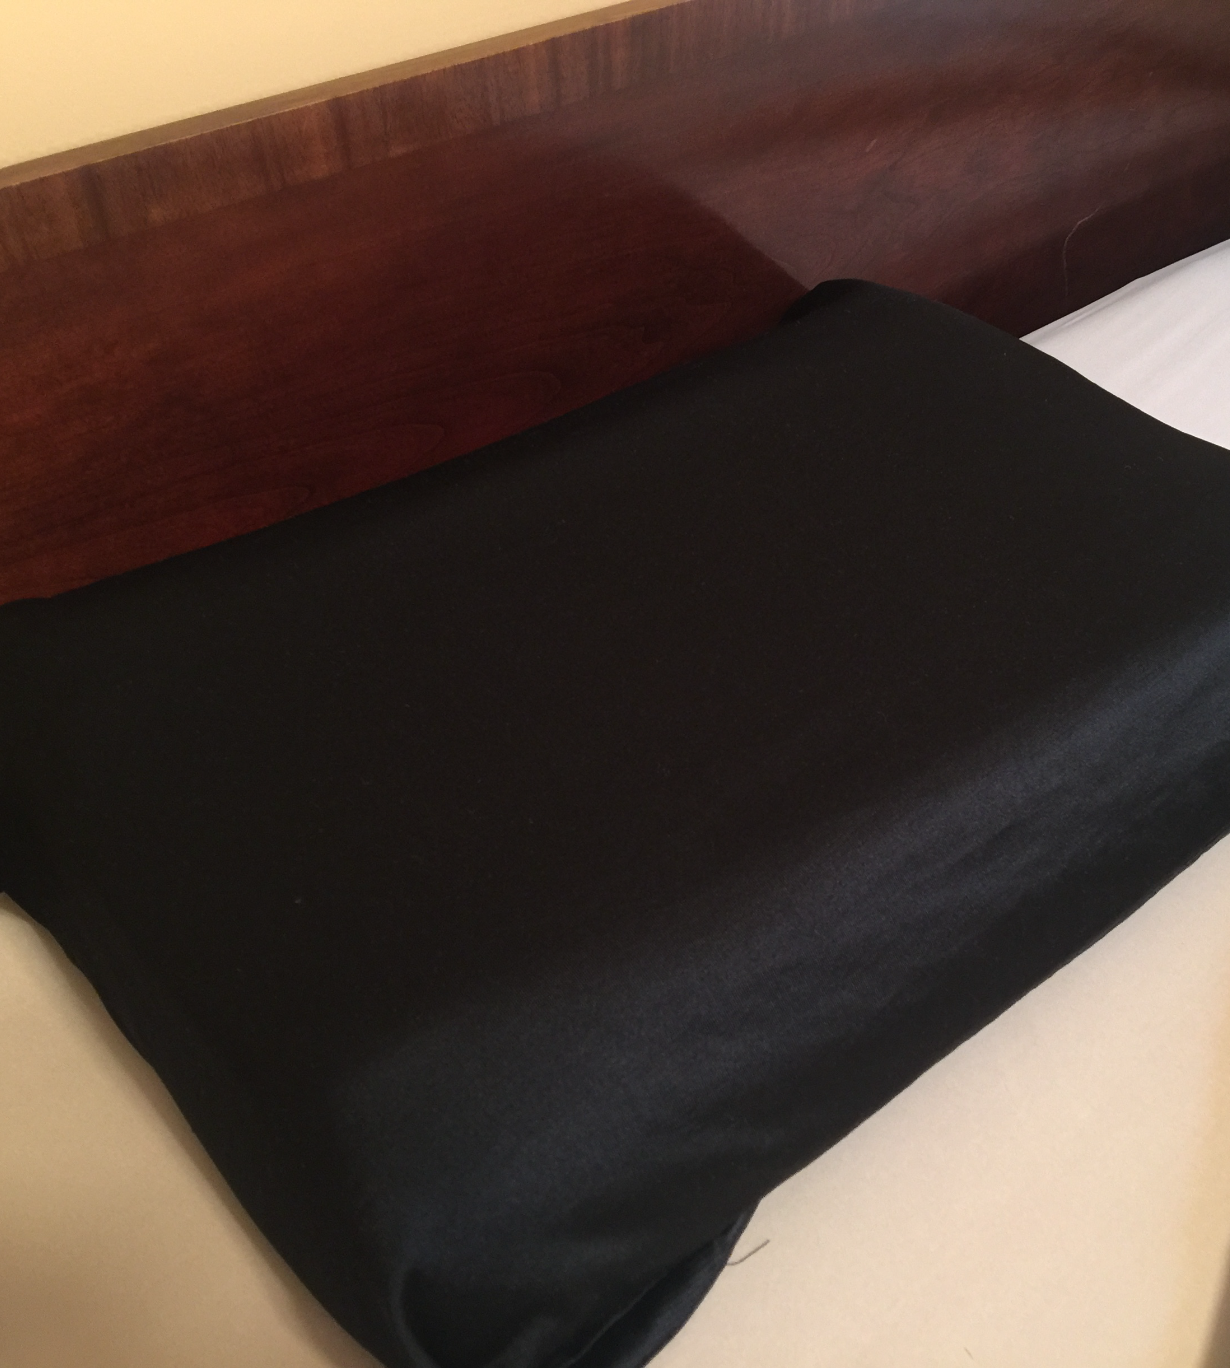 Satin Pillowcase Prevent Hair Loss: Change Your Sleep Life : The Wonders Of A Satin Pillowcase